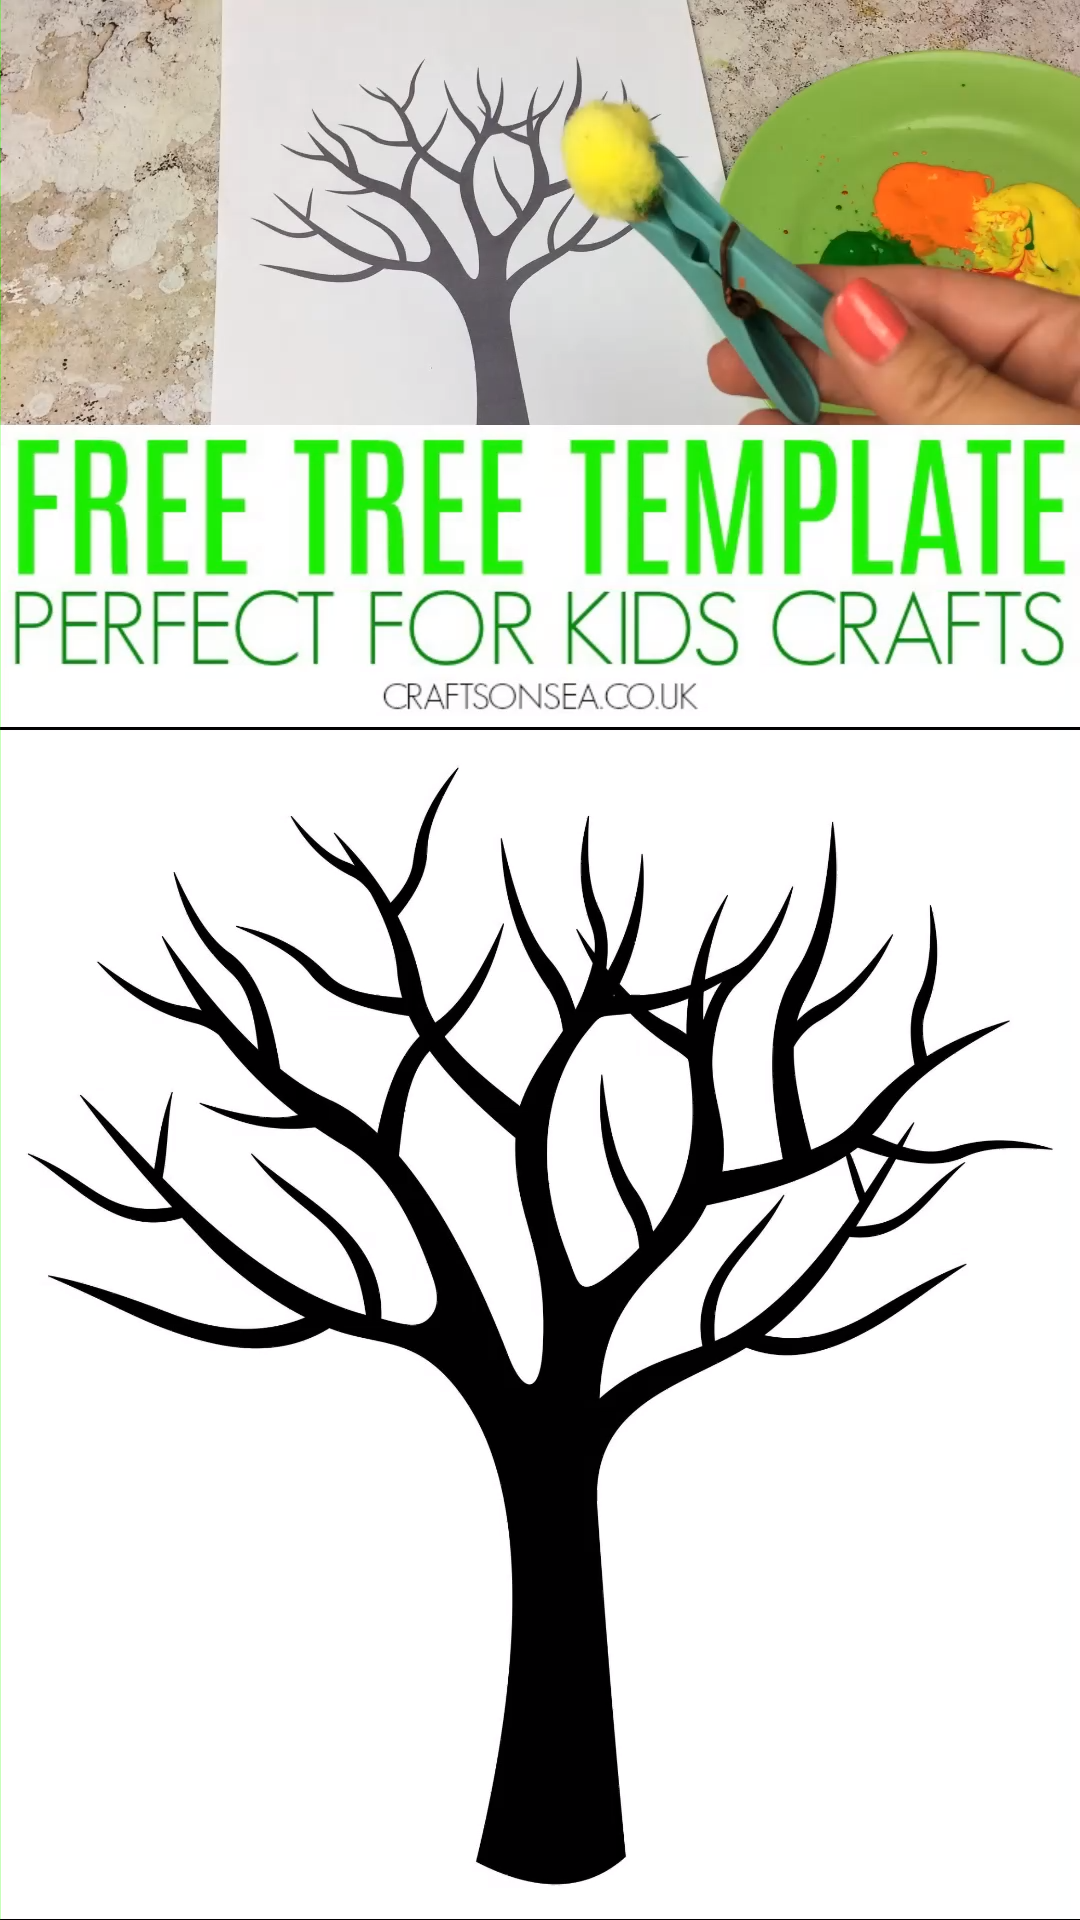 Free Tree Template for Kids Crafts